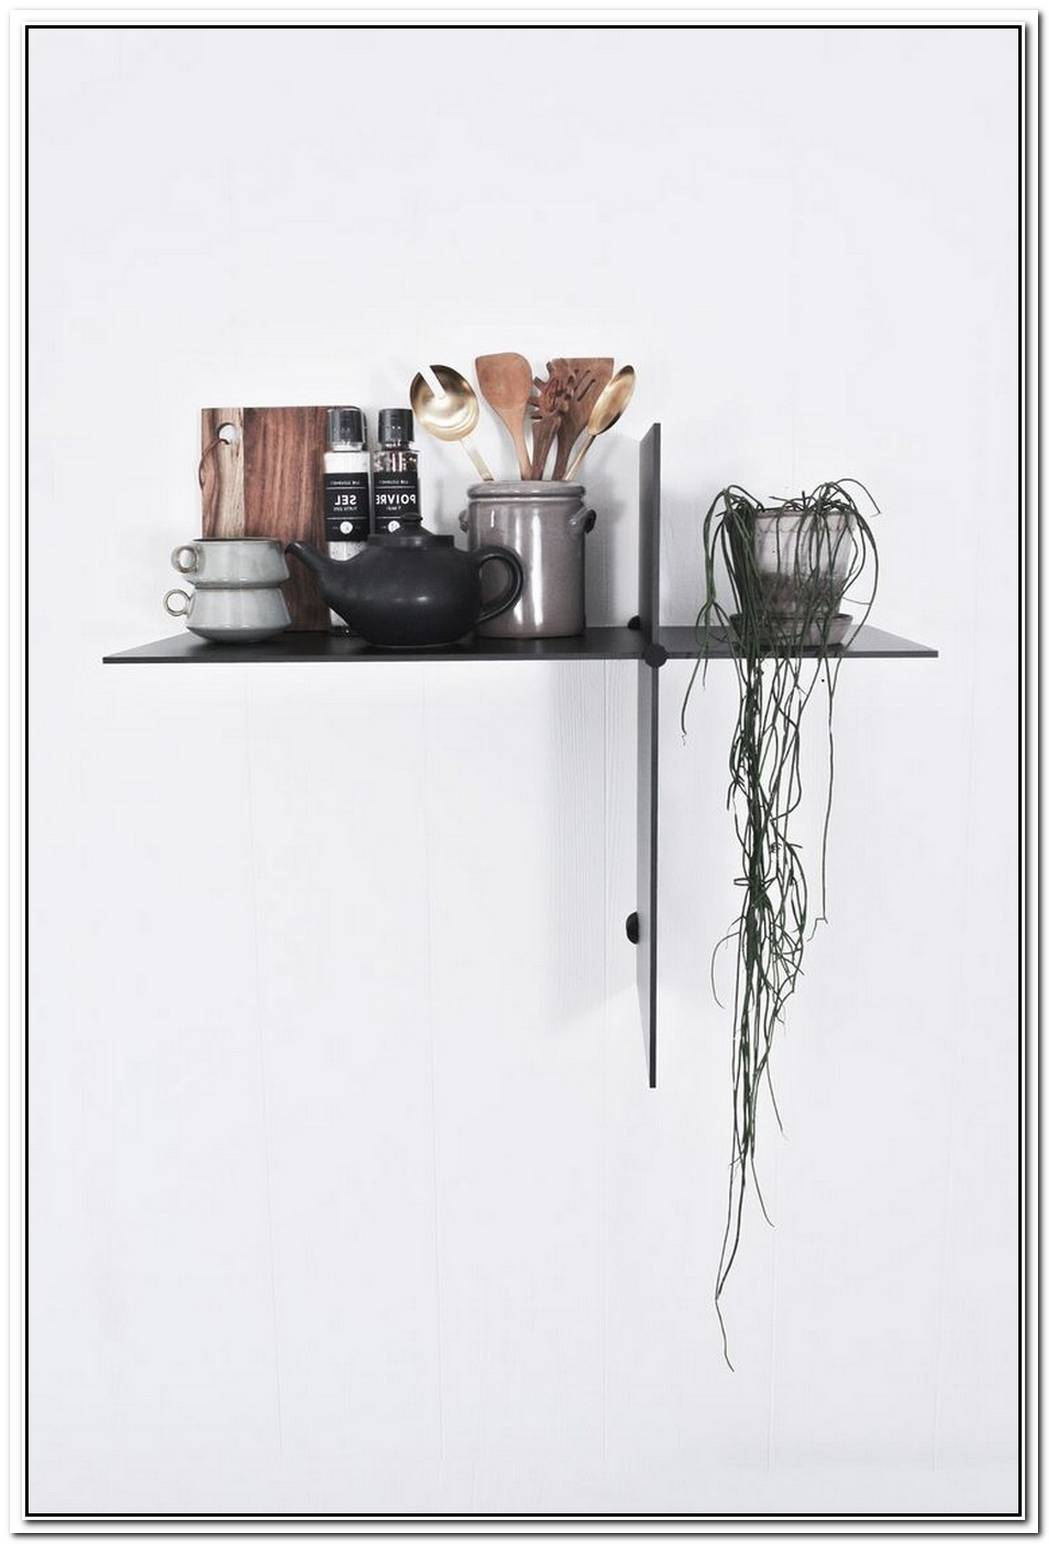 The Practical Klaffi Shelf